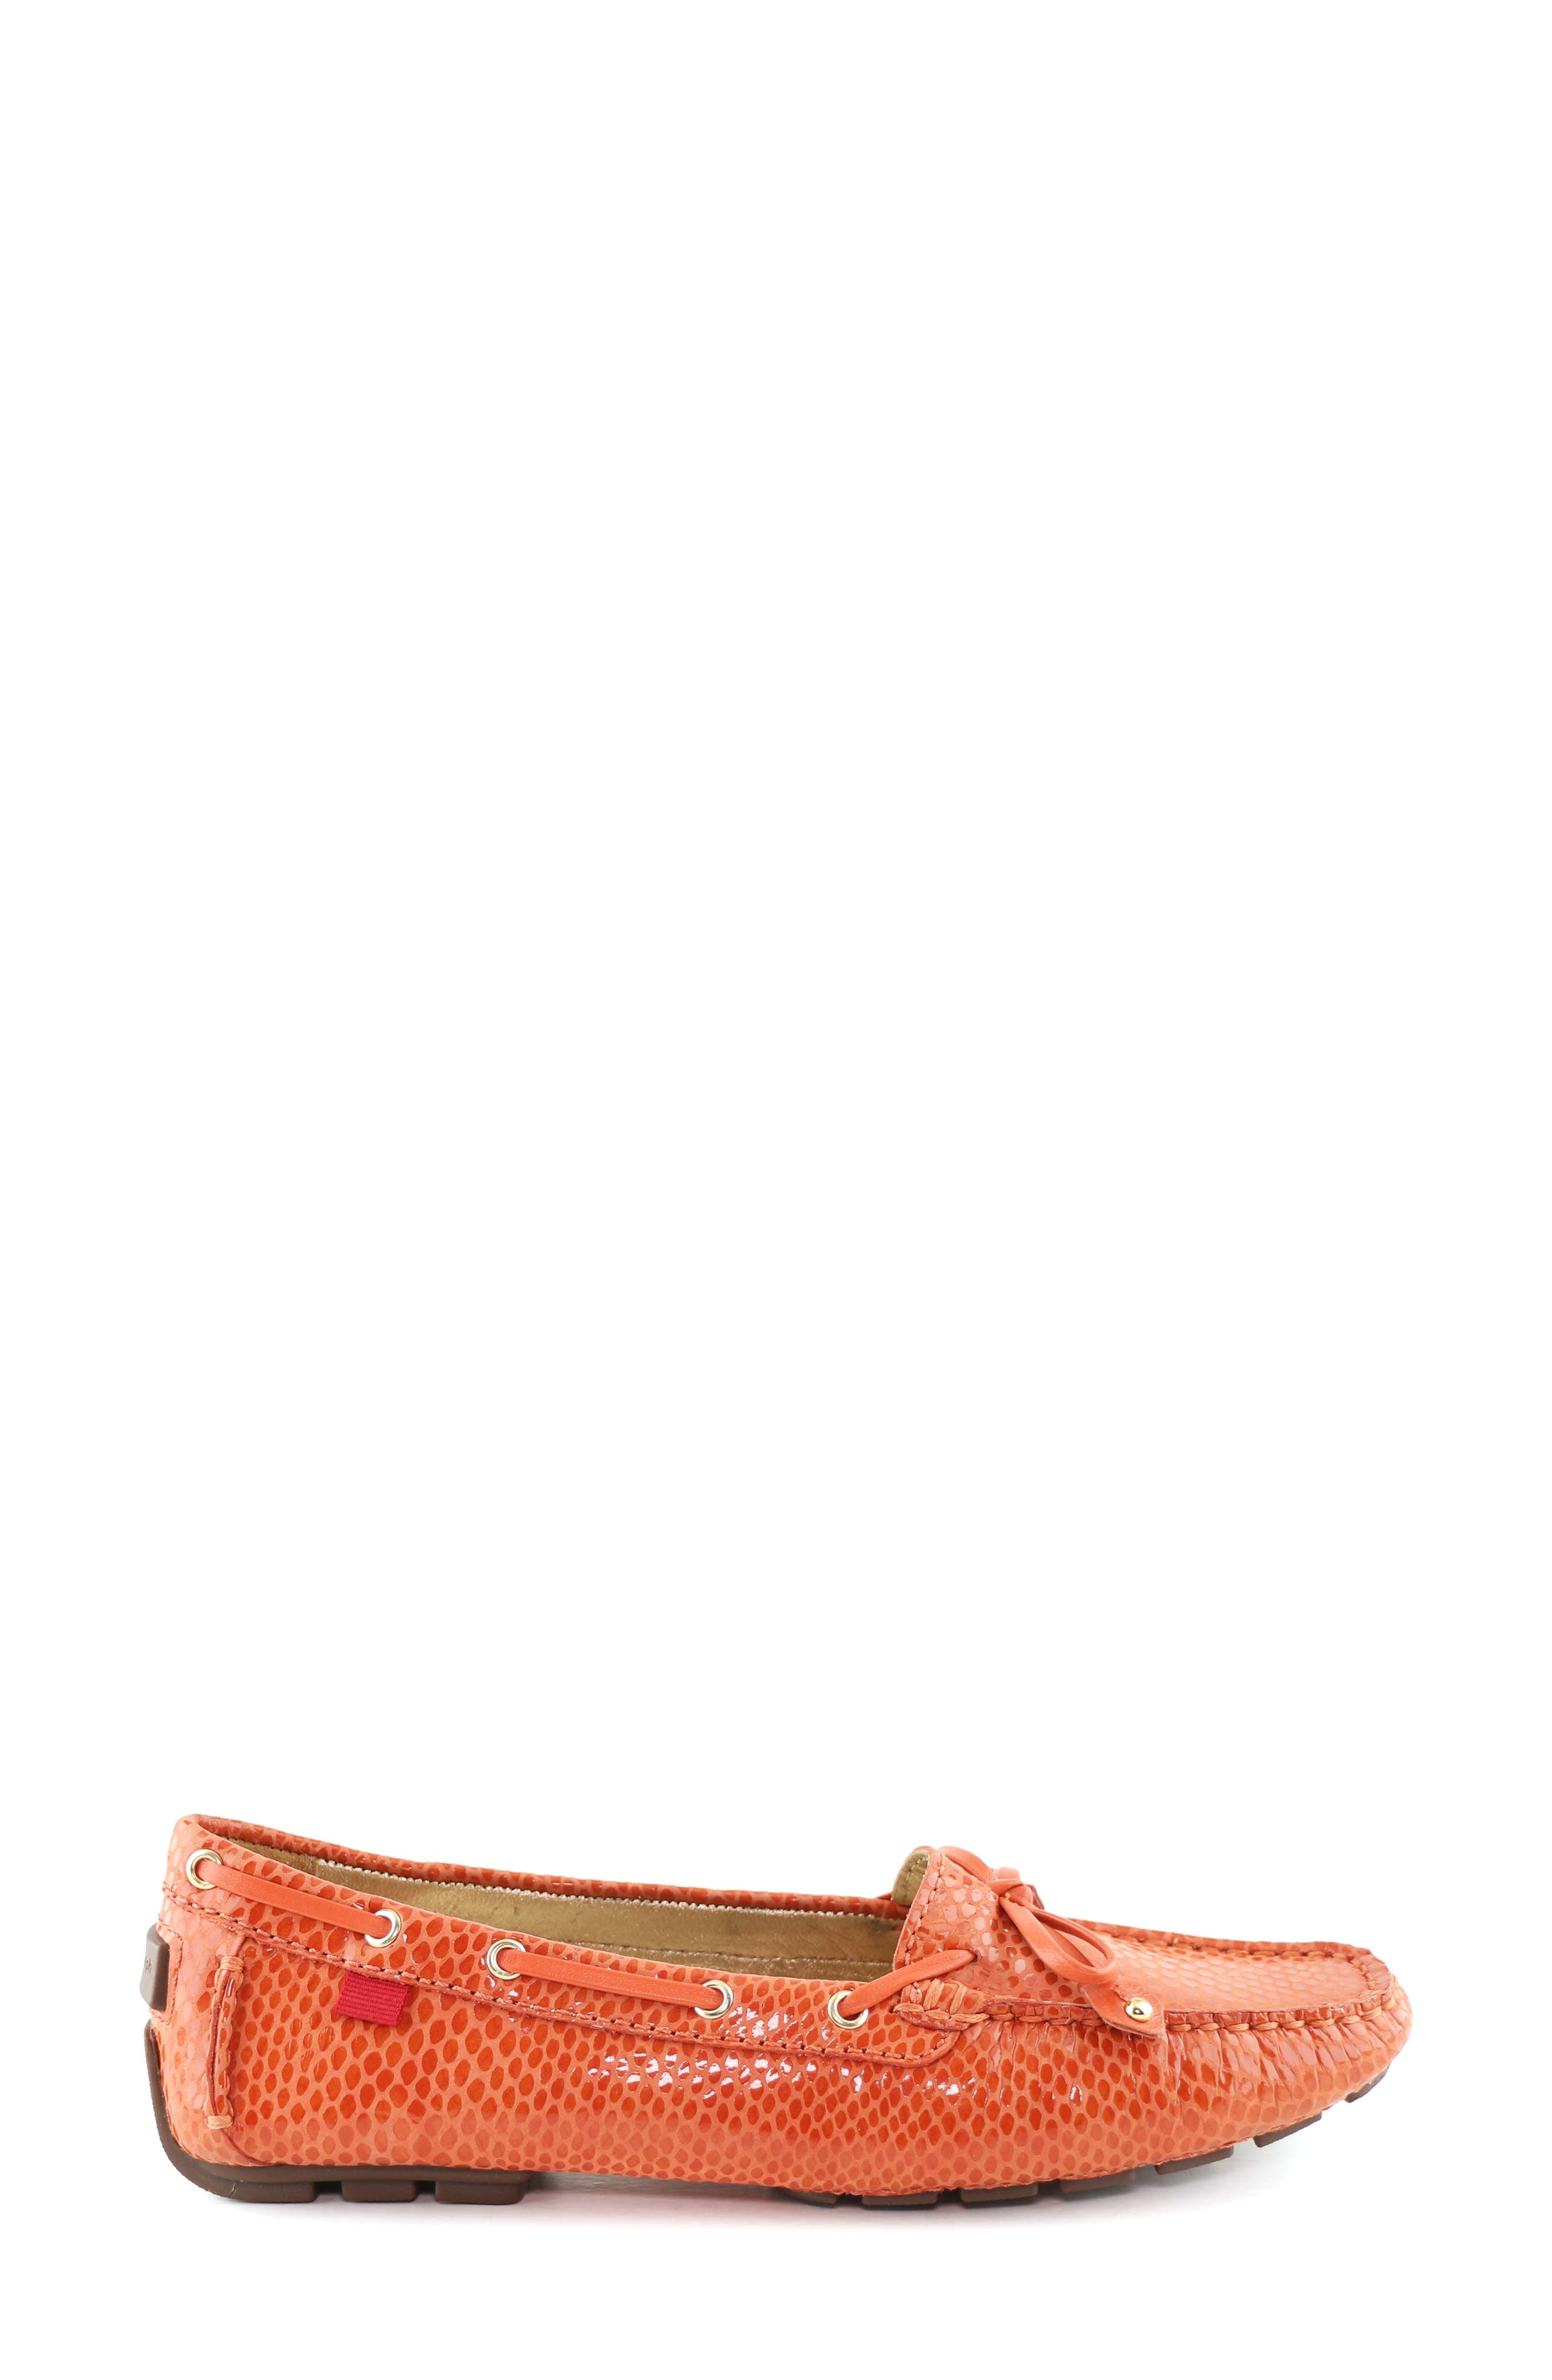 MARC JOSEPH NEW YORK, 'Cypress Hill' Loafer, Alternate thumbnail 3, color, CORAL SNAKE PRINT LEATHER